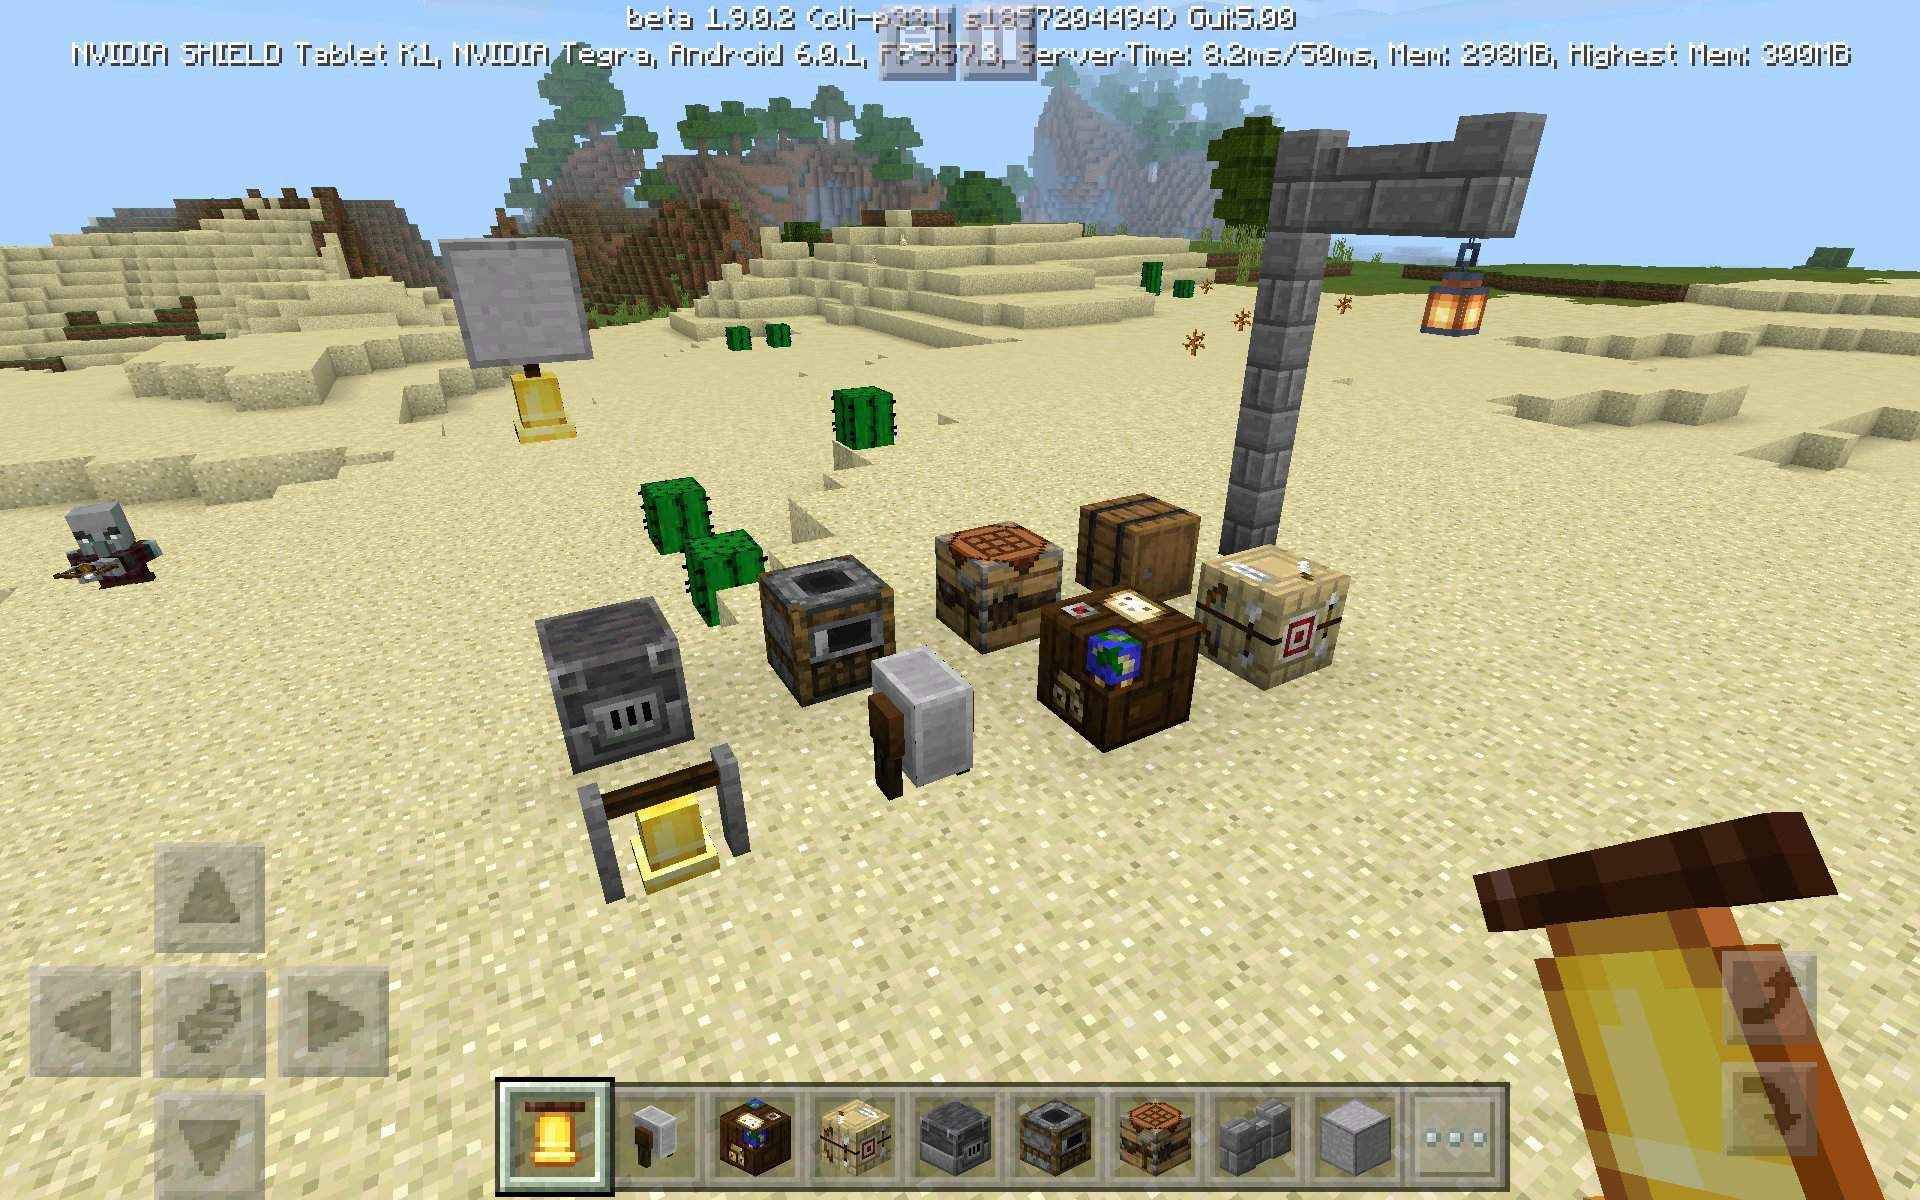 New 1 9 Beta For Minecraft Bedrock, Snapshot 18w48a Delayed, & More